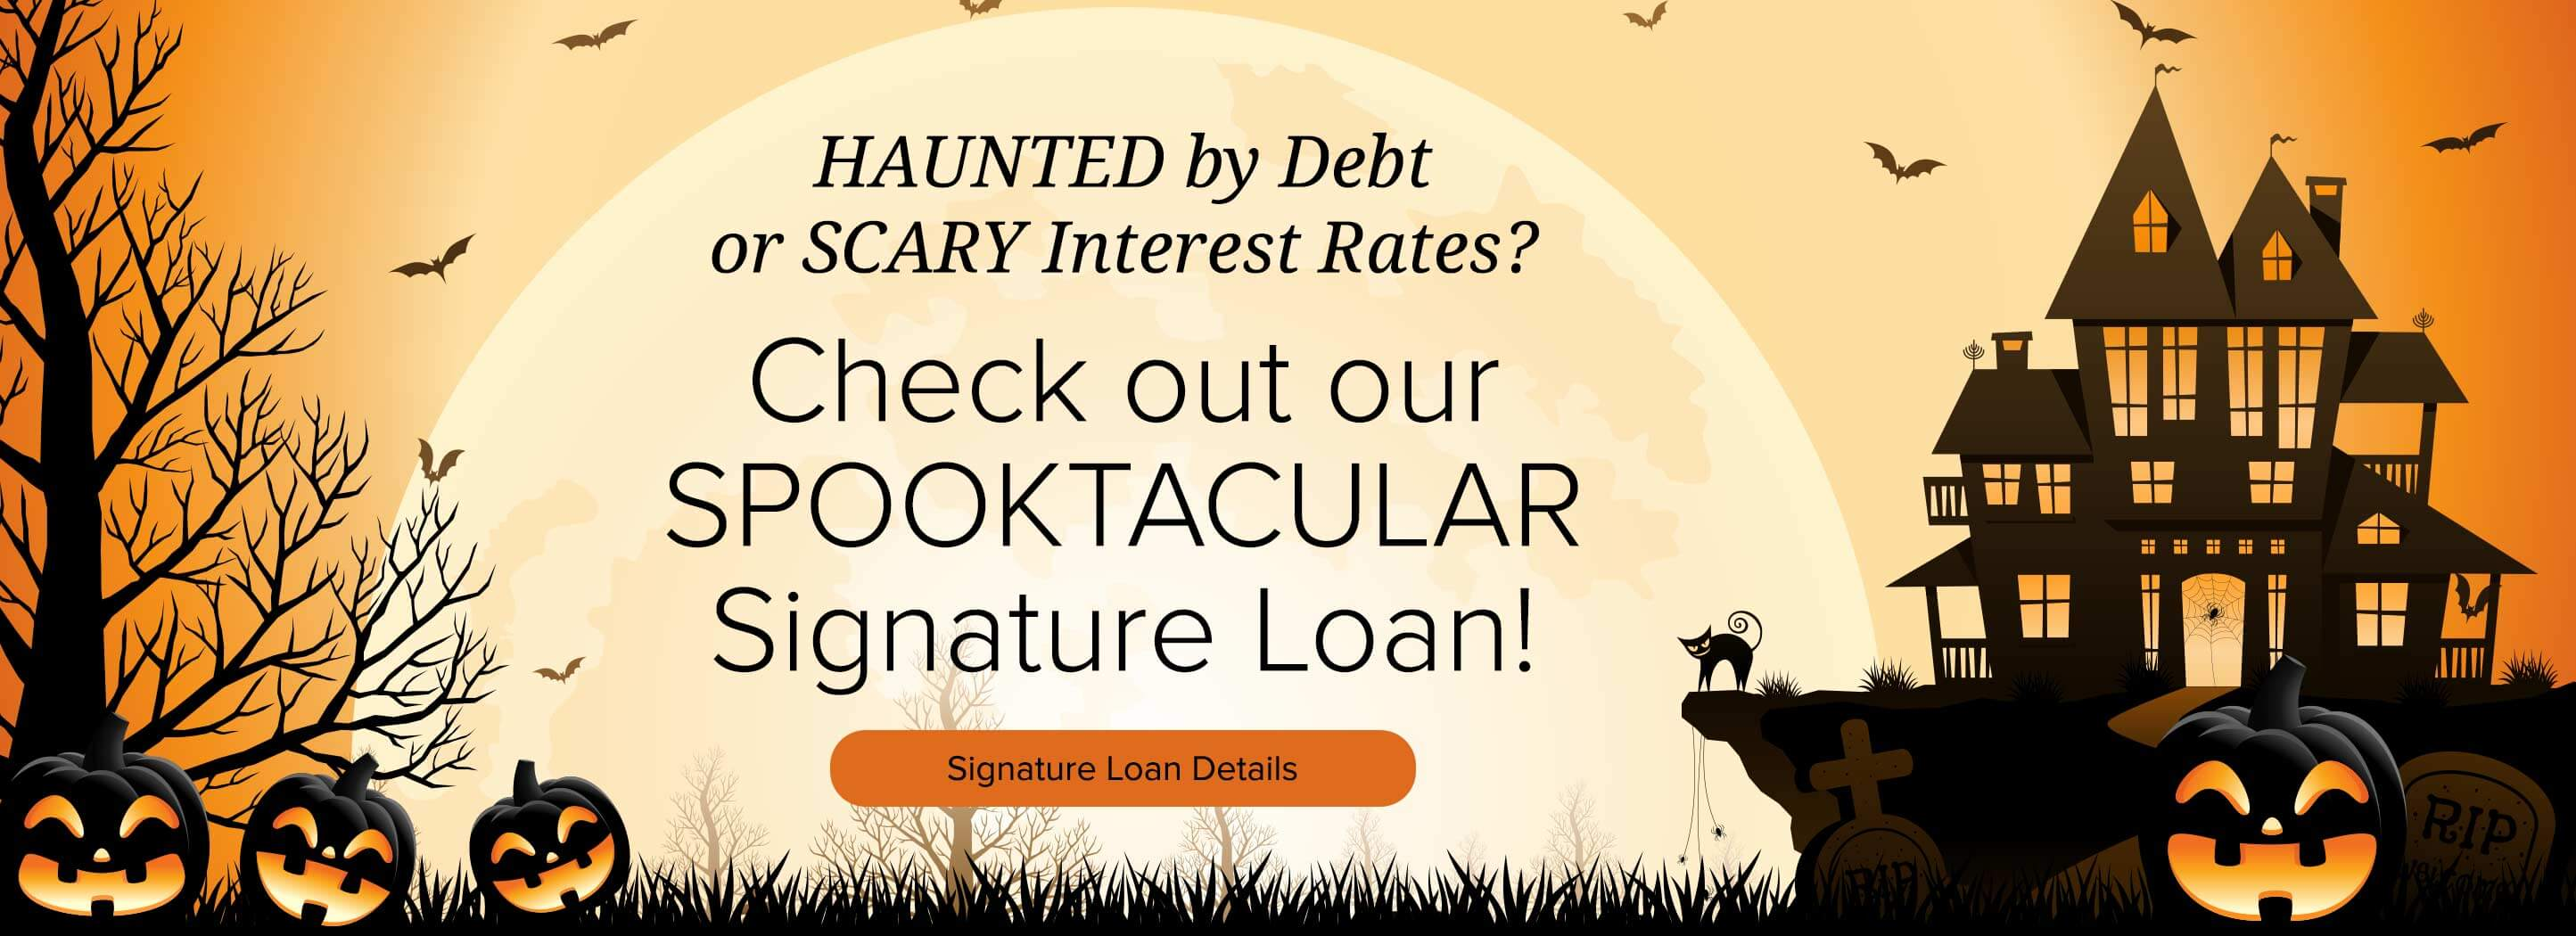 HAUNTED by Debt or SCARY Interest Rates? Check out our SPOOKTACULAR Signature Loan! Signature Loan Details